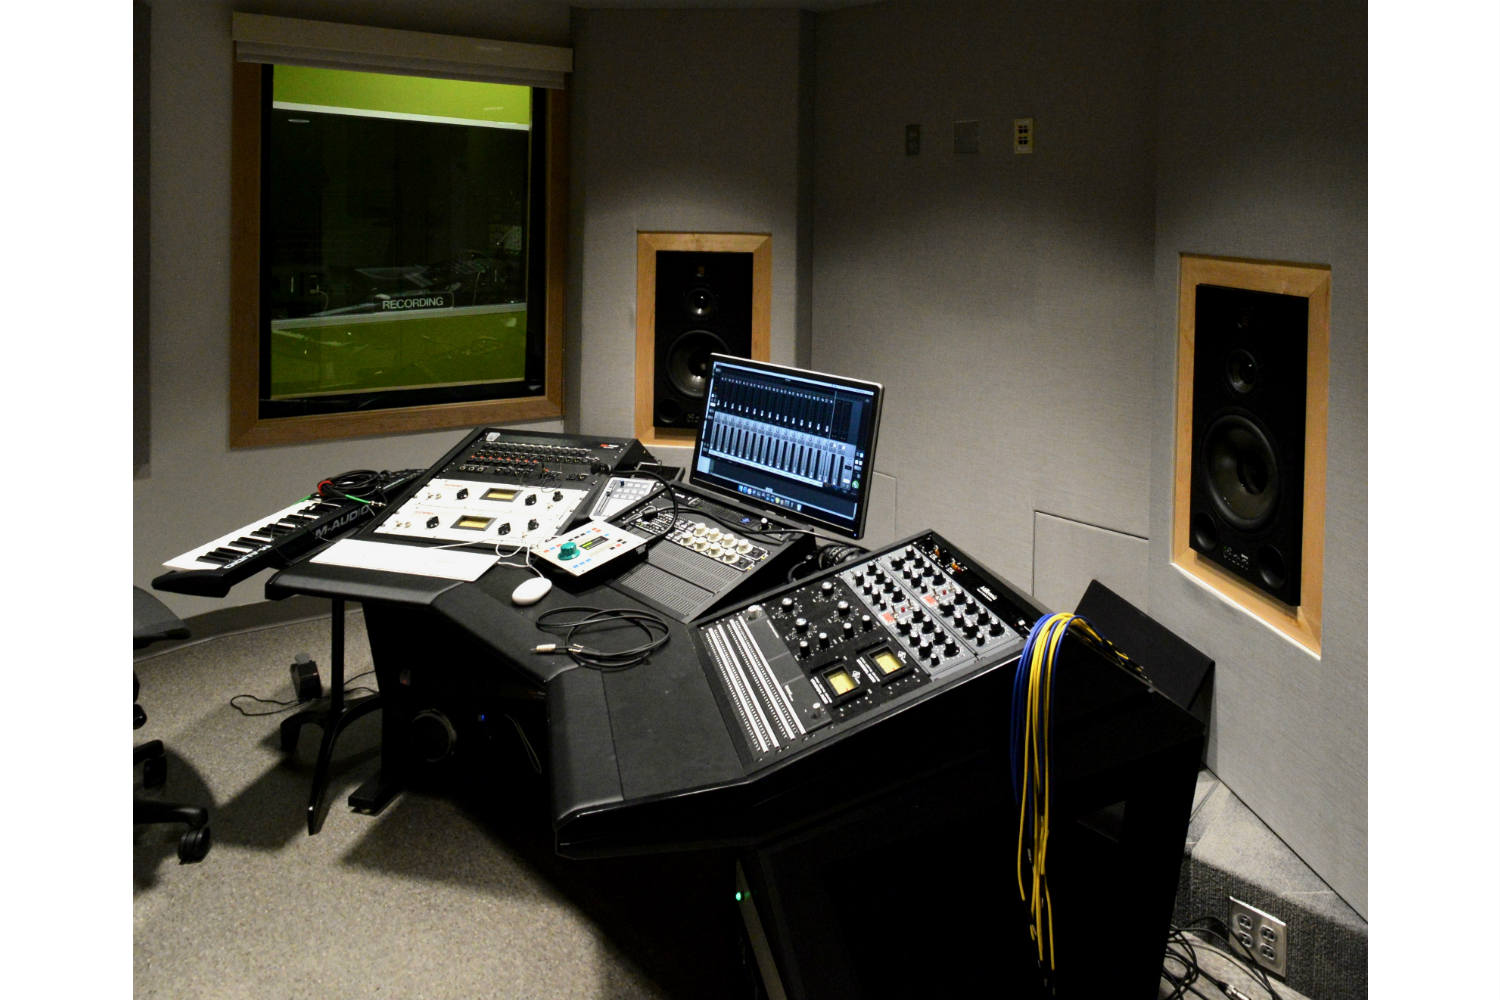 Drexel University in Philadelphia, PA is one of America's 15 largest universities. Their brand-new recording facilities, designed by the WSDG team, expands their music and recording program. Control Room B